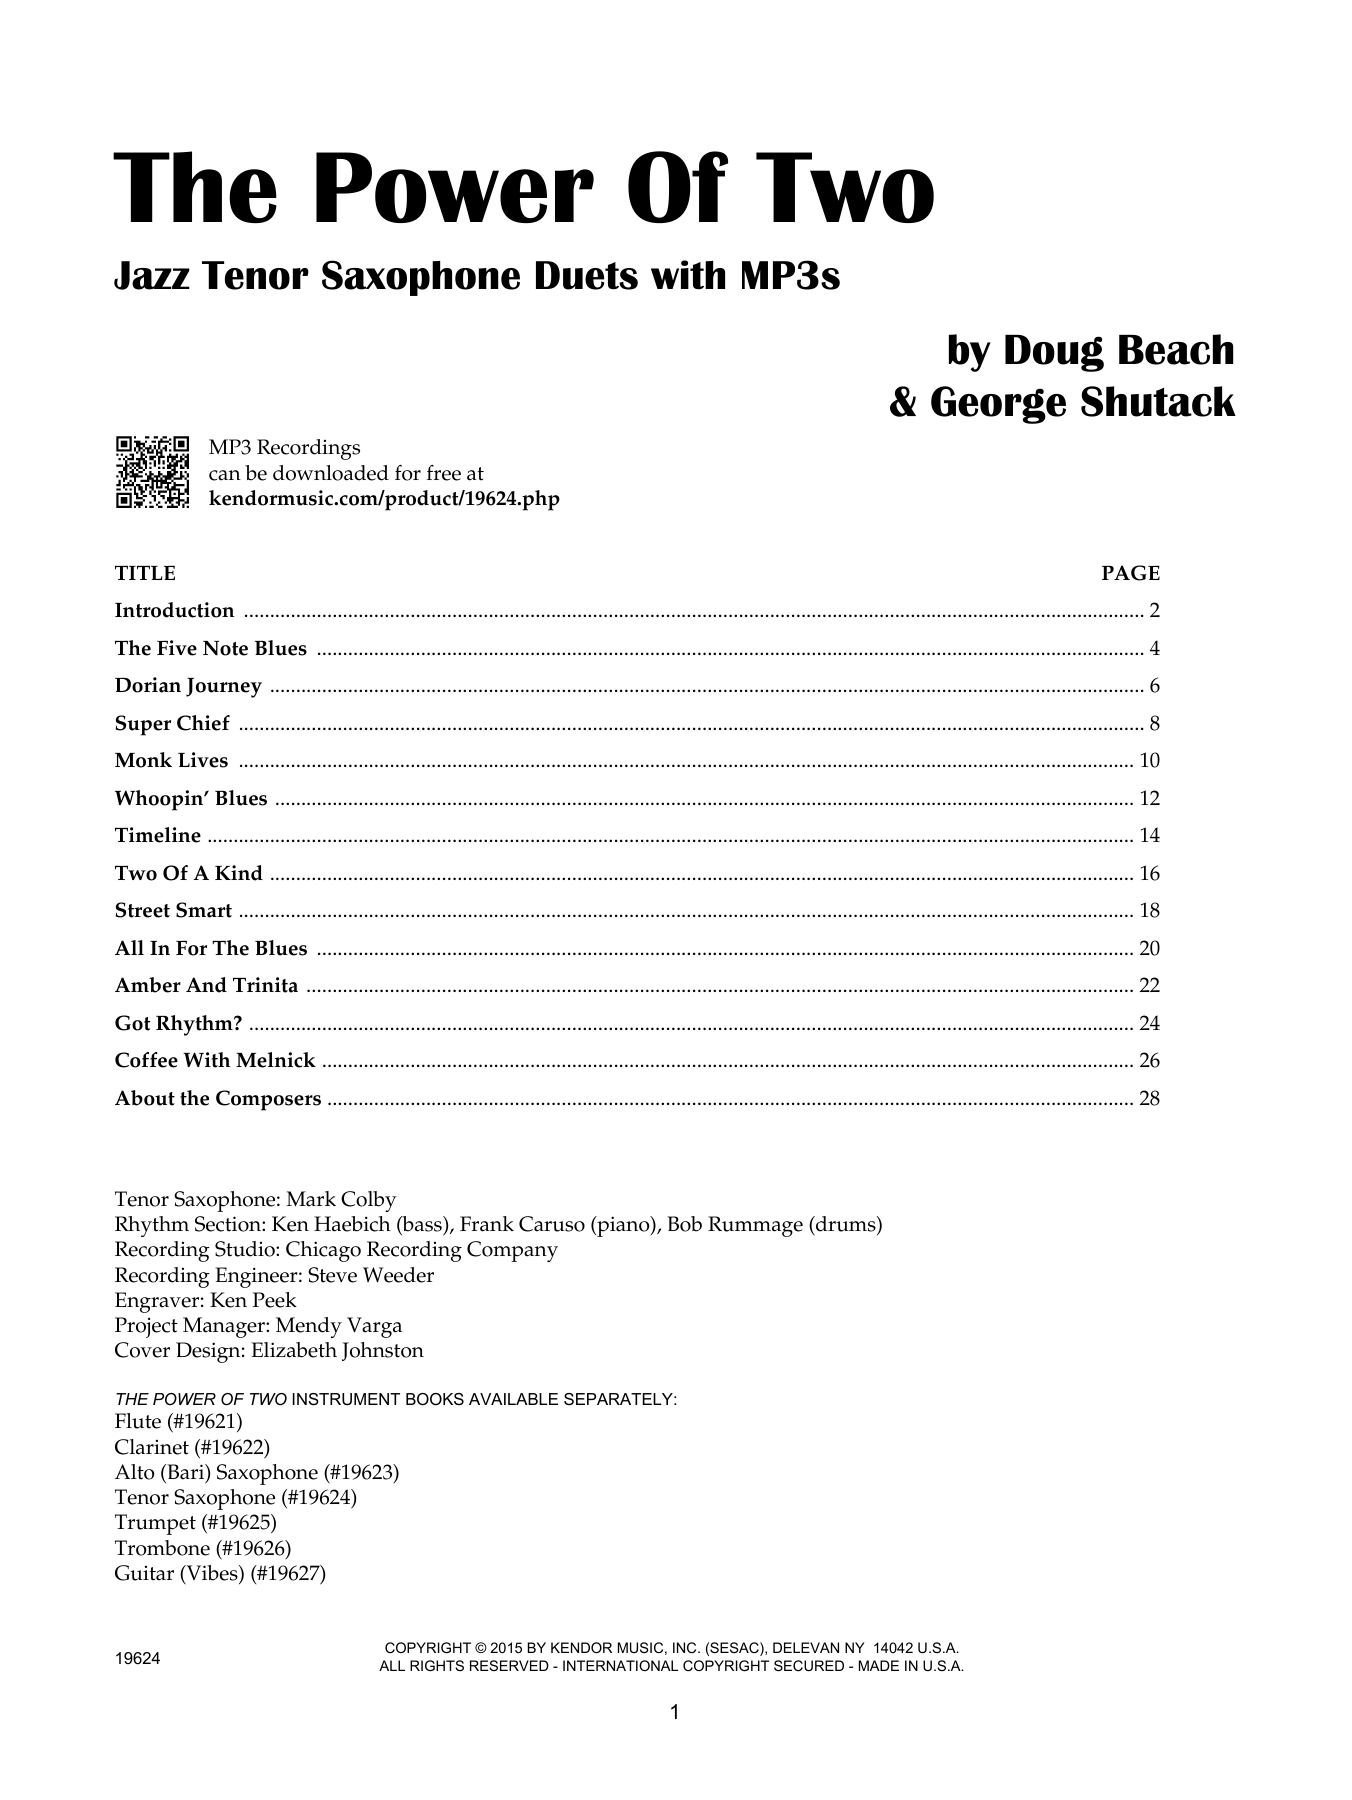 The Power Of Two - Tenor Saxophone Sheet Music